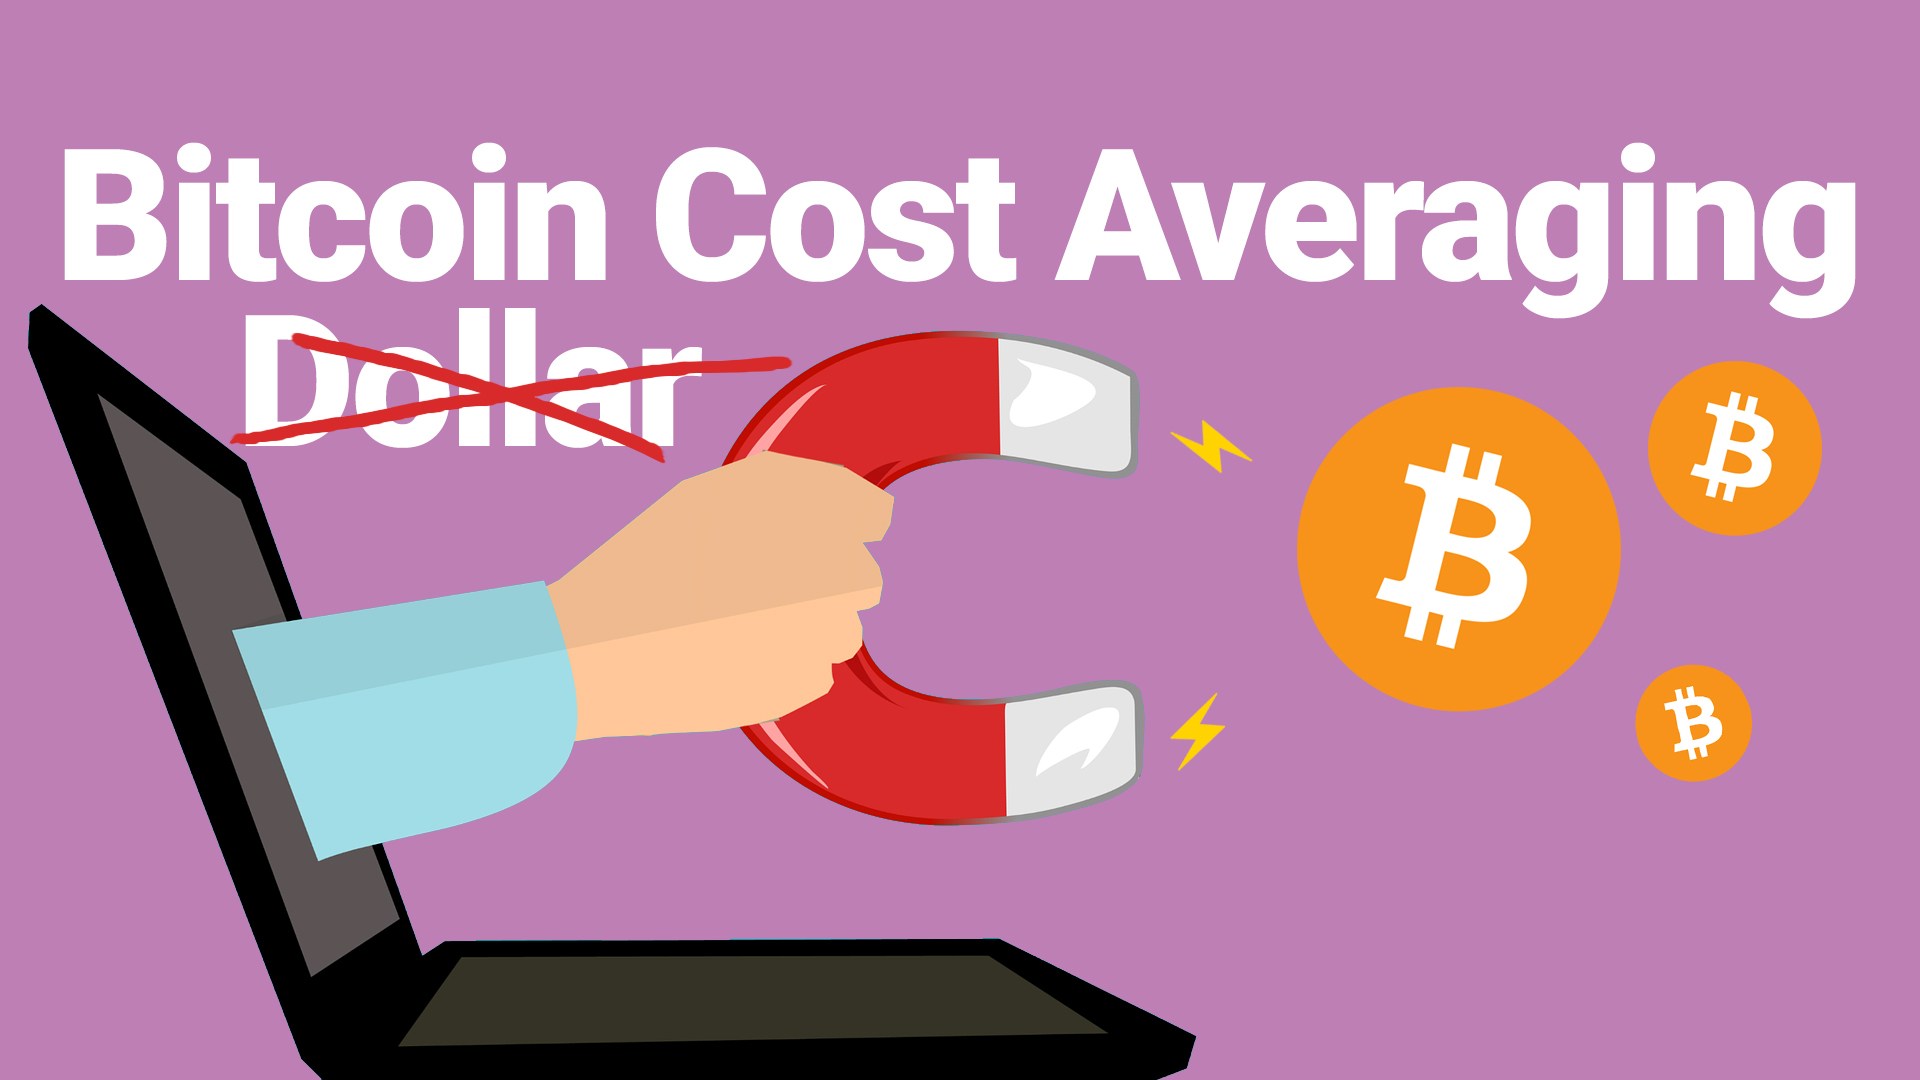 dollar cost averaging bitcoin cryptocurrency dca BCA